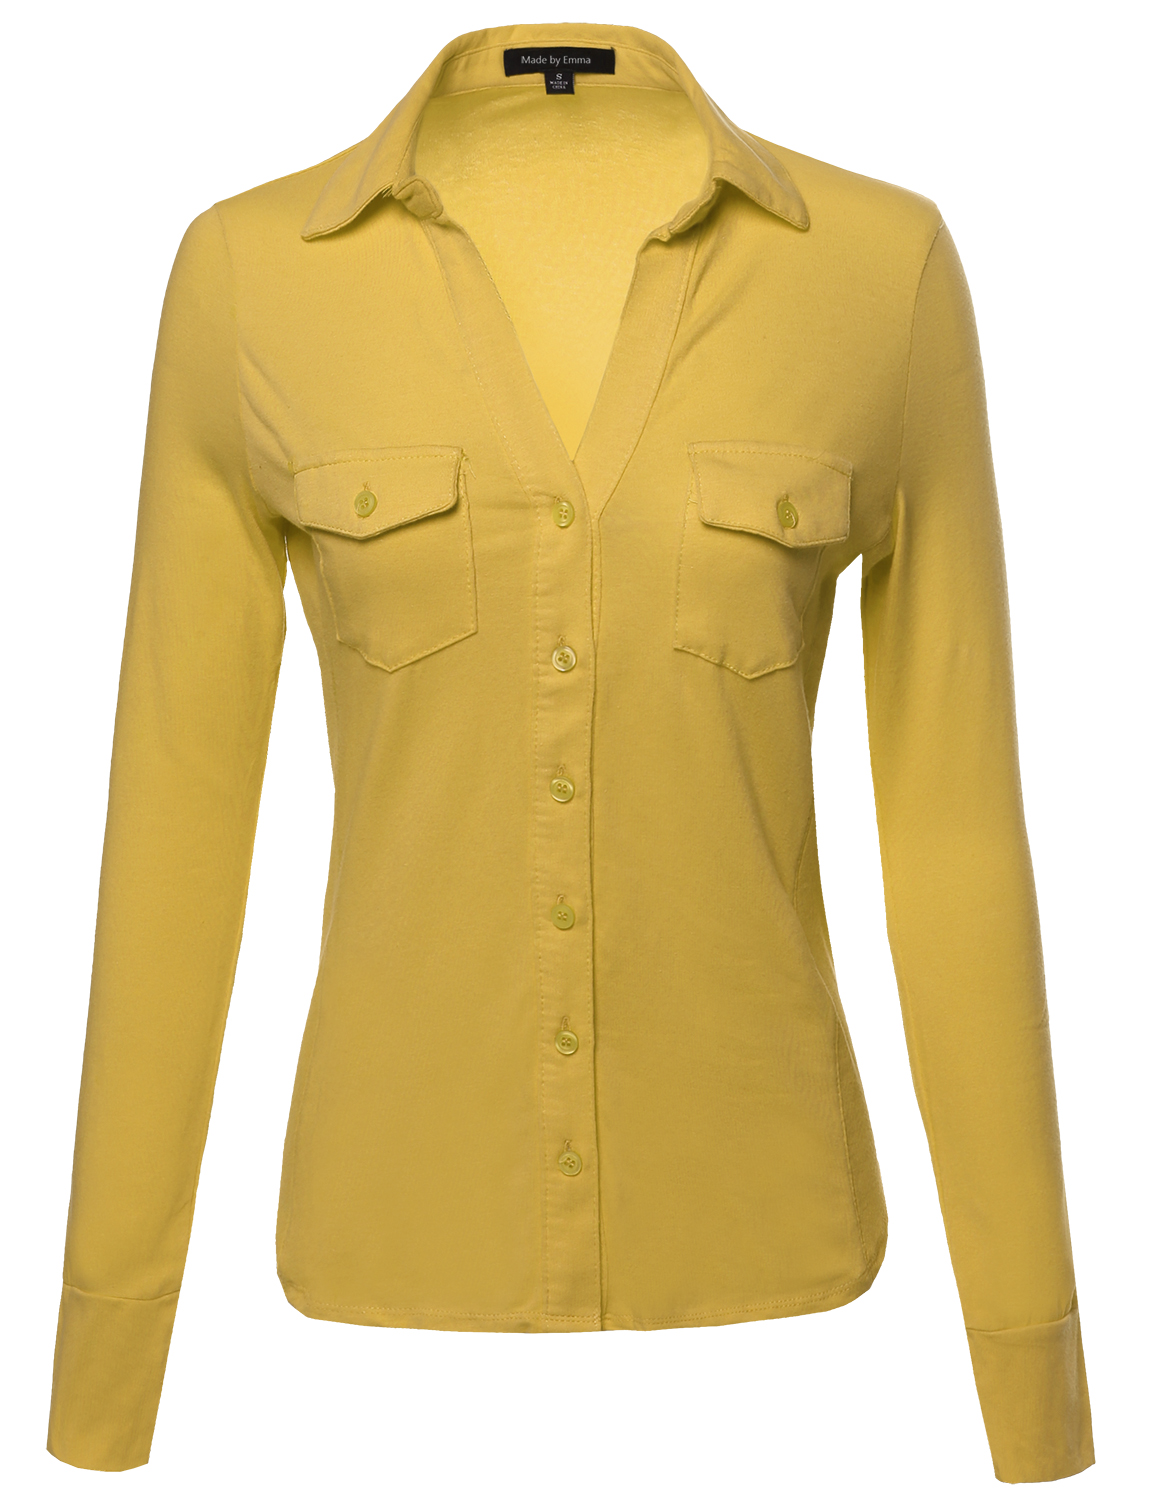 Fashionoutfit Women 39 S Solid Cotton Side Ribbed Pockets